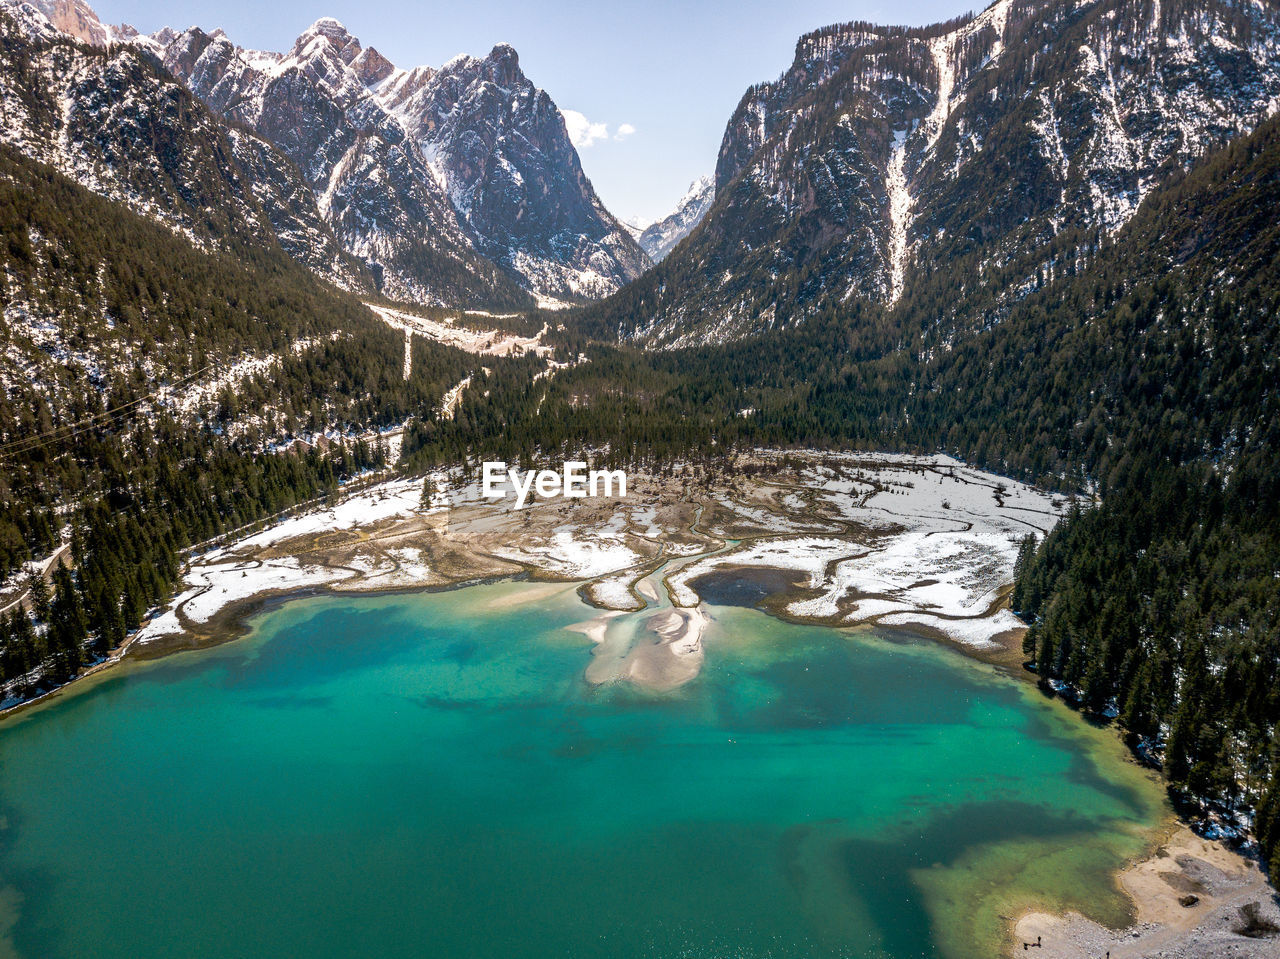 water, mountain, scenics - nature, beauty in nature, tranquility, tranquil scene, lake, mountain range, nature, non-urban scene, idyllic, day, sky, plant, tree, turquoise colored, waterfront, no people, remote, outdoors, snowcapped mountain